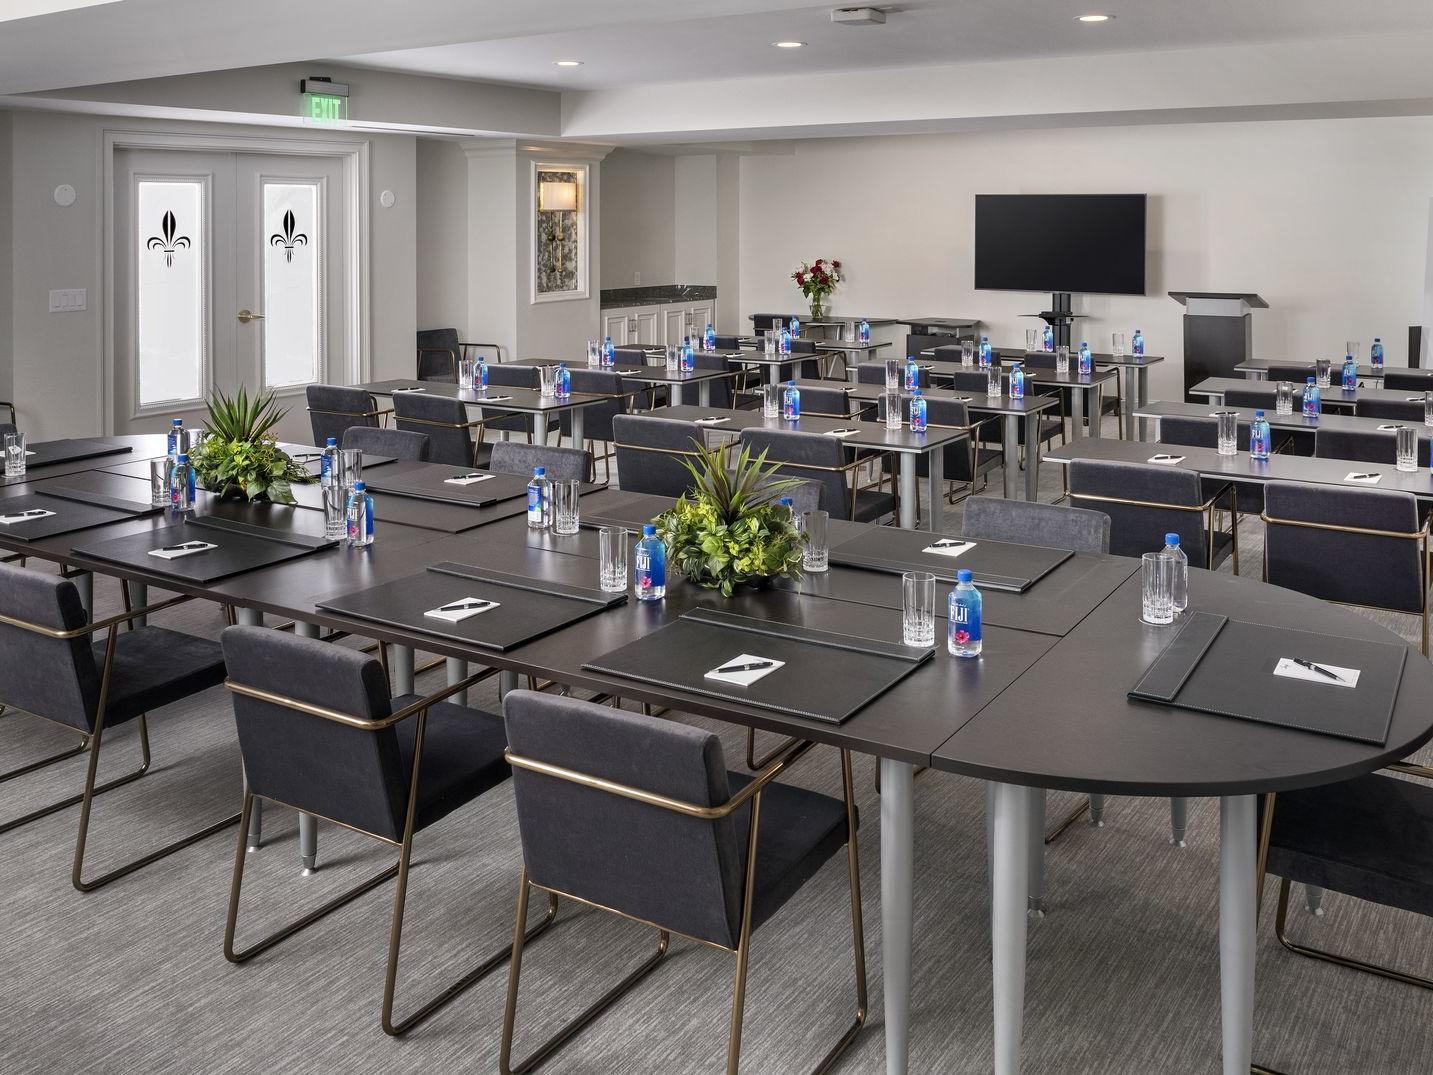 conference room with black tables and chairs